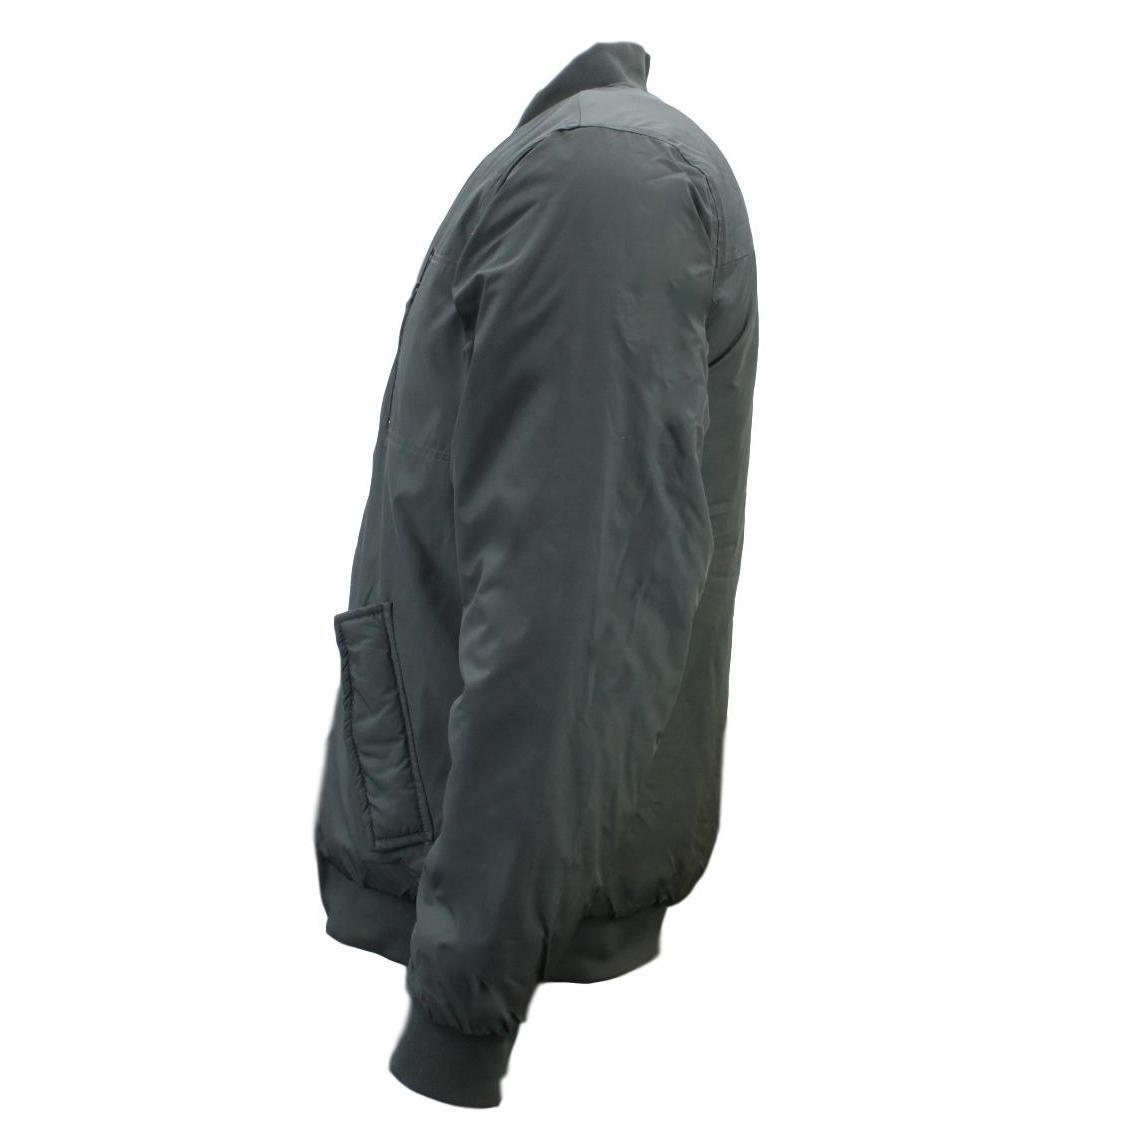 Ozemocean-Mens-Bomber-Jacket-Water-Resistant-Padded-Coat-Winter-Warm-Quilted thumbnail 7